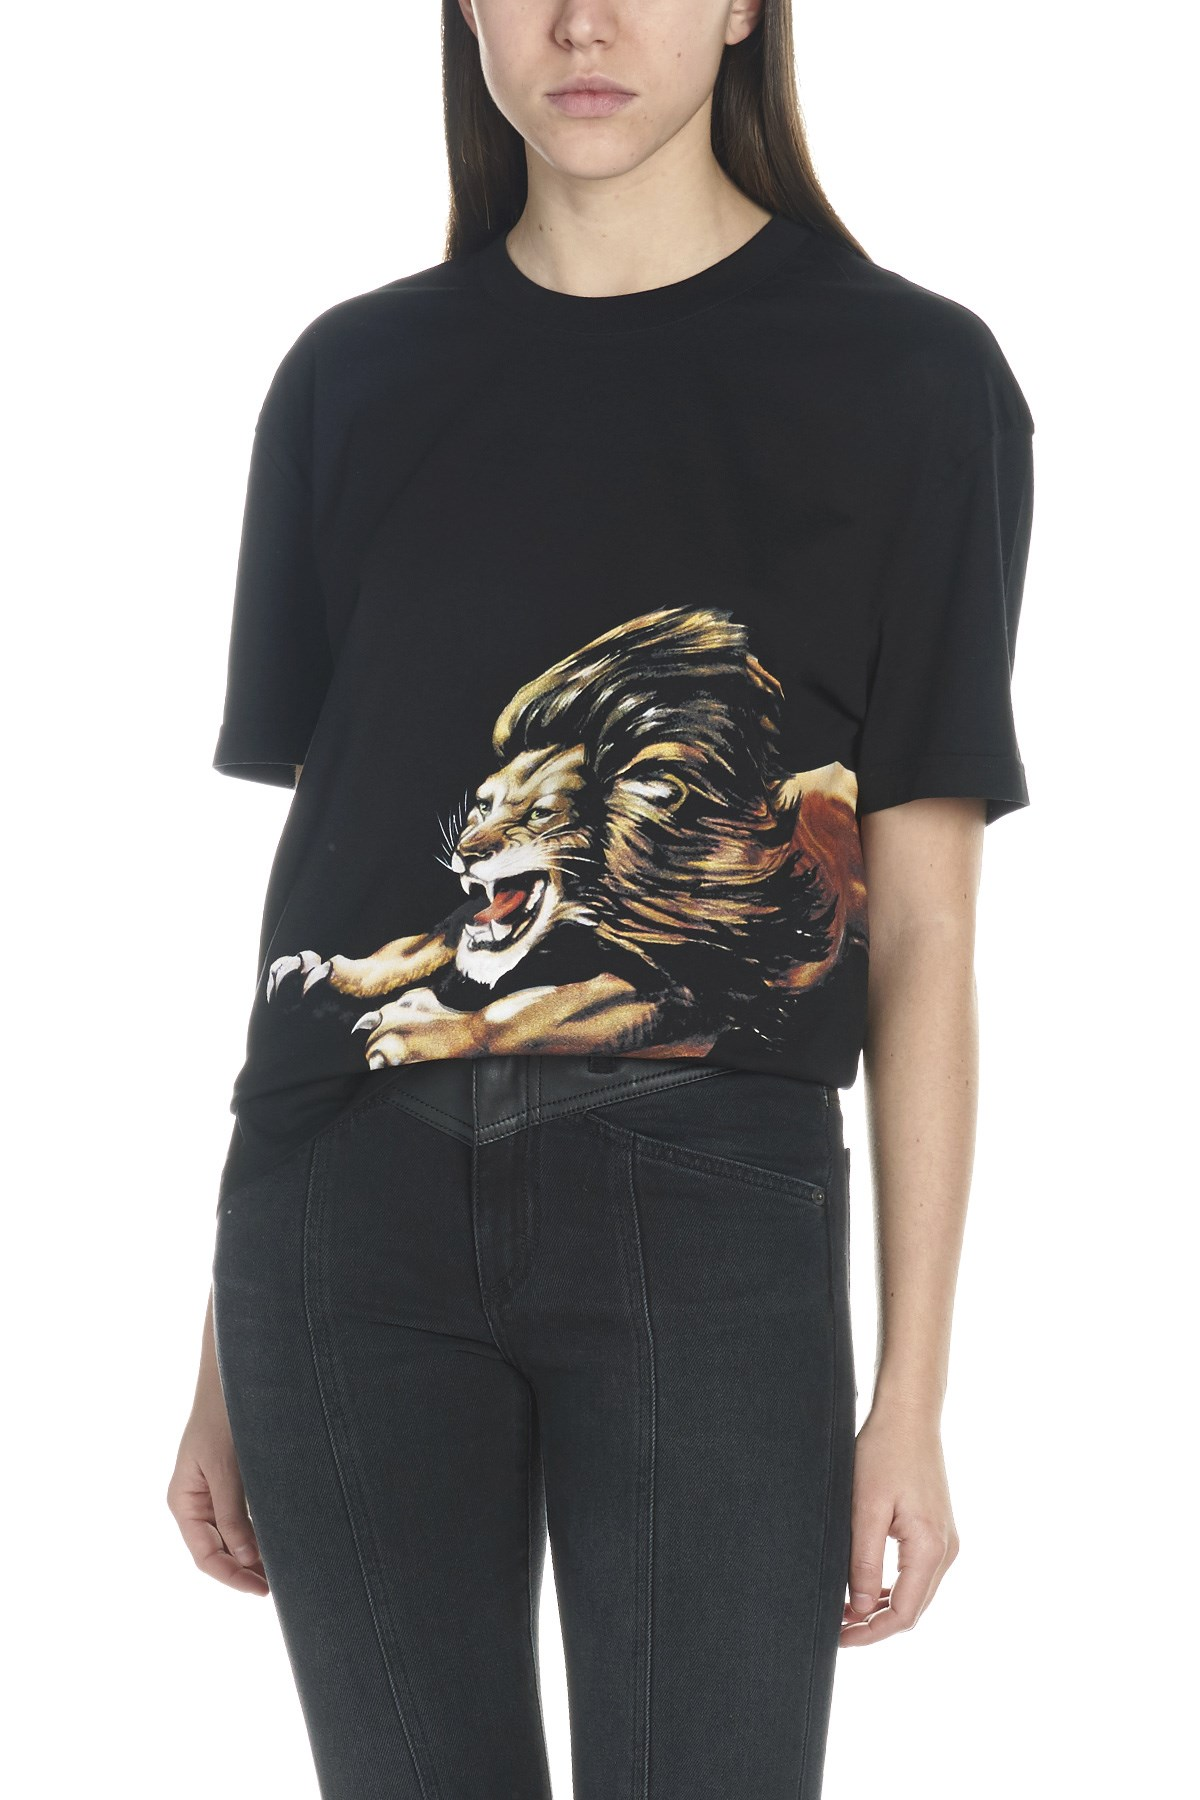 77b613447f78d givenchy  leo  t-shirt available on julian-fashion.com - 62230